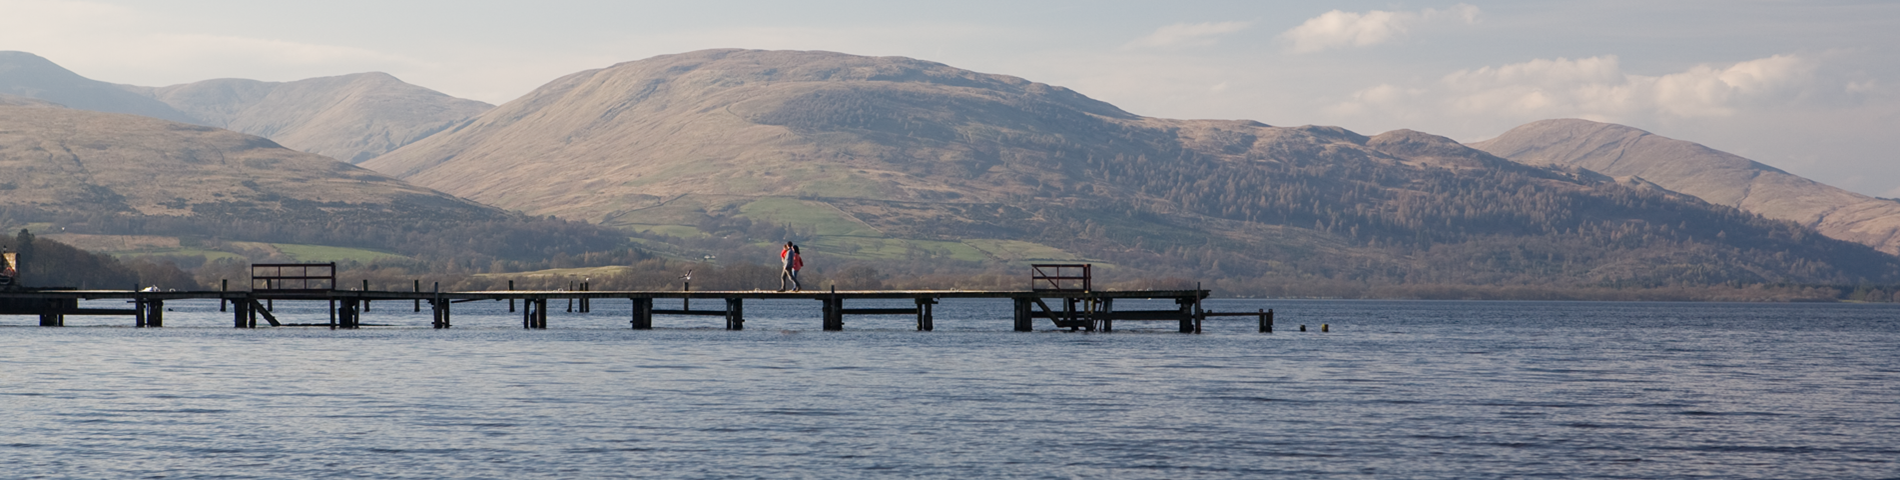 Pier on Loch Lomond with the hills in the background